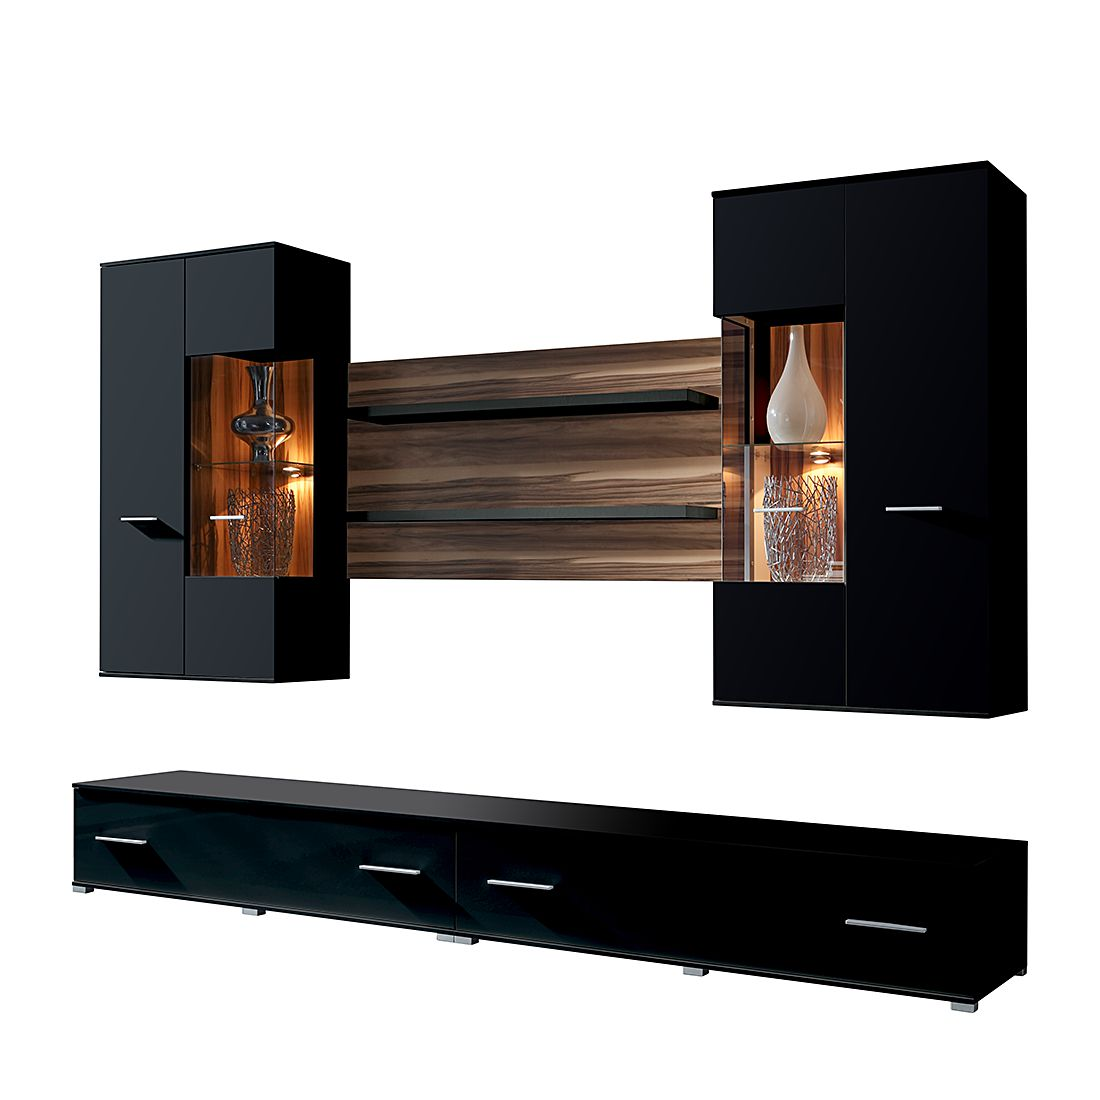 nussbaum schwarz interesting kommode nussbaum schwarz lovely kommode nussbaum schwarzglas with. Black Bedroom Furniture Sets. Home Design Ideas